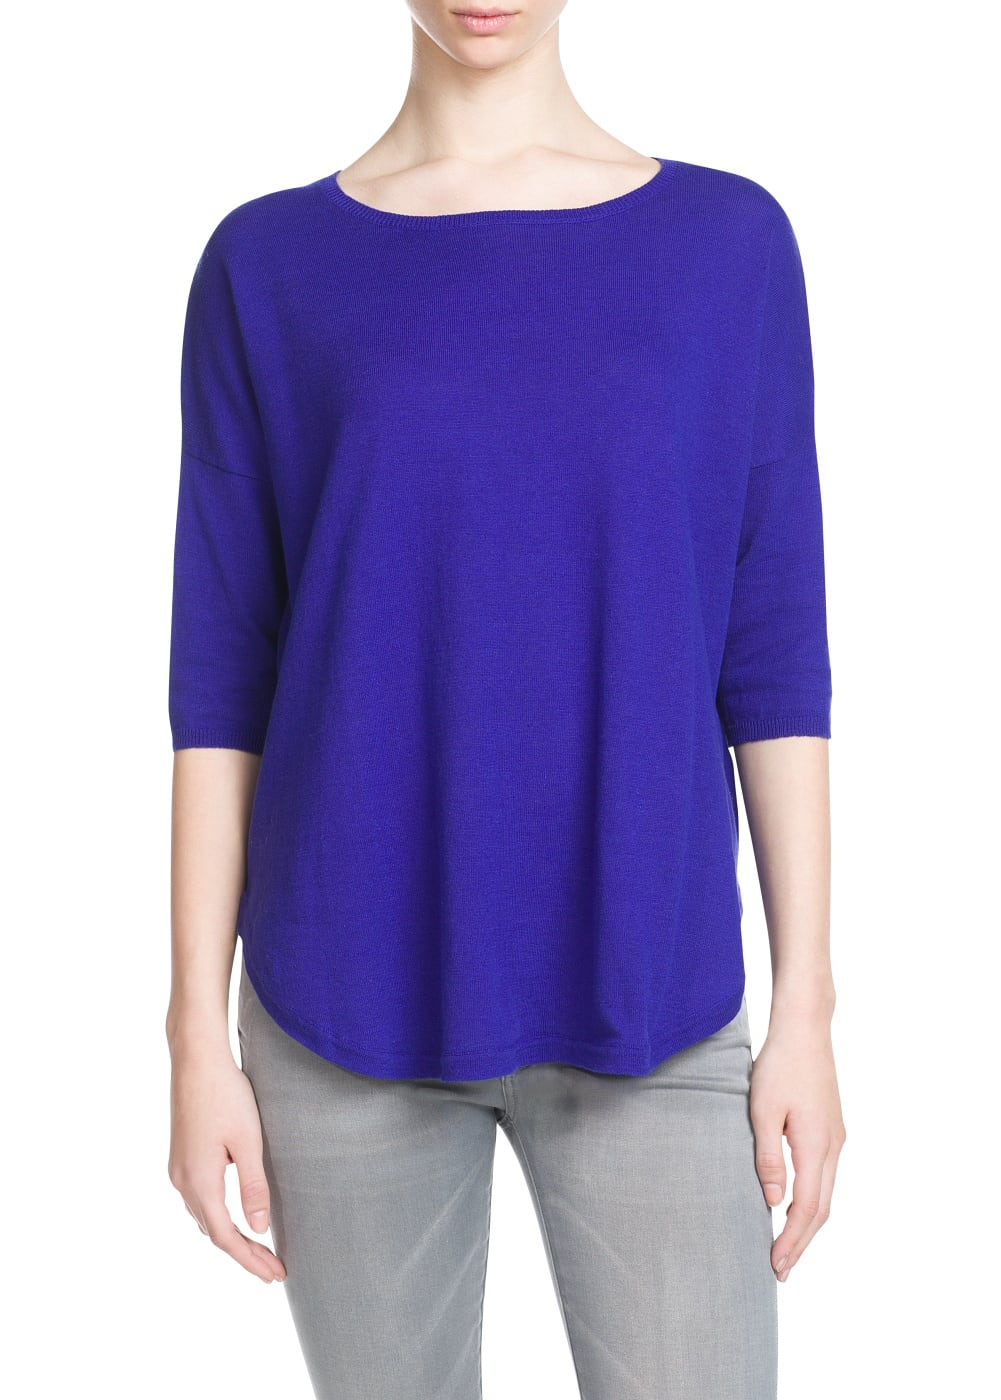 Pull-over manches chauve-souris